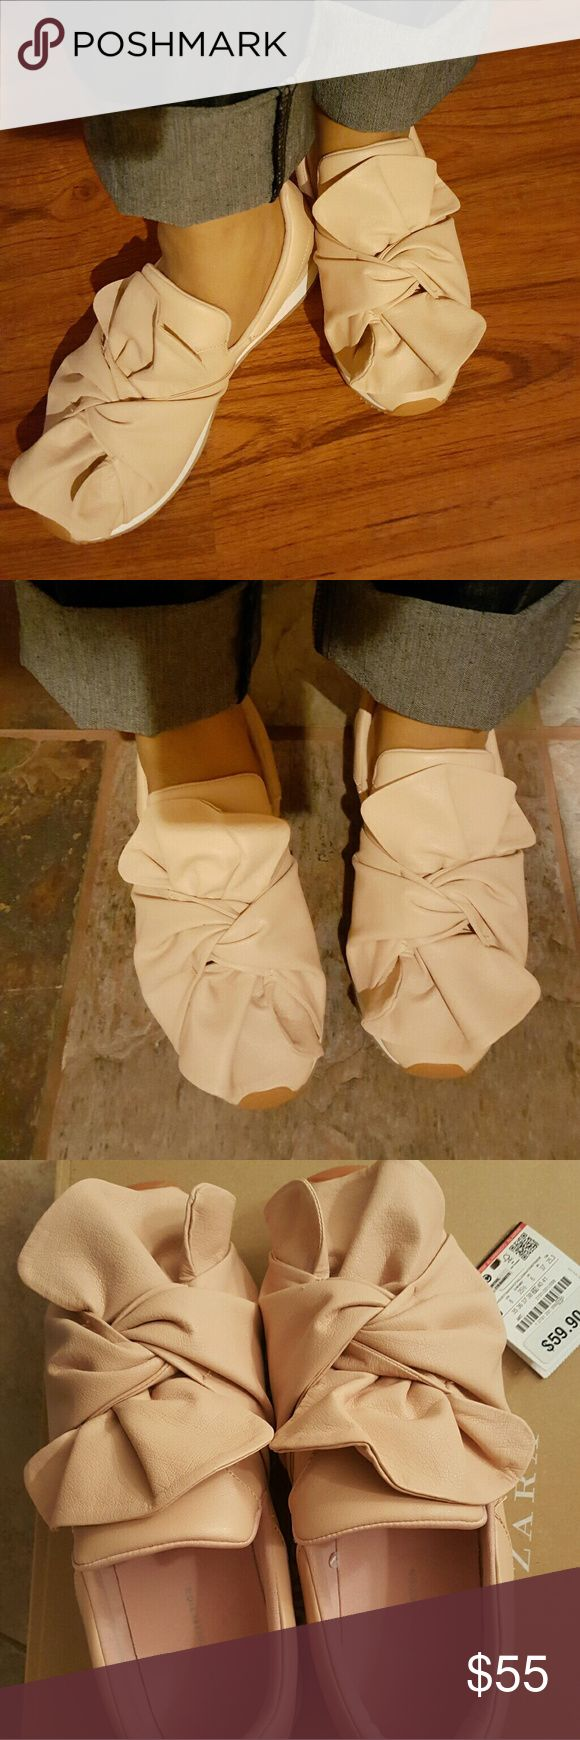 Authentic Zara Blush Cream Bow Sneakers!! NWT, Worn once in this pic.  No stains or marks. Excellent condition.  Just purchased from Zara online. Size 8, Euro 39 Comes with dust bag and box. Zara Shoes Sneakers